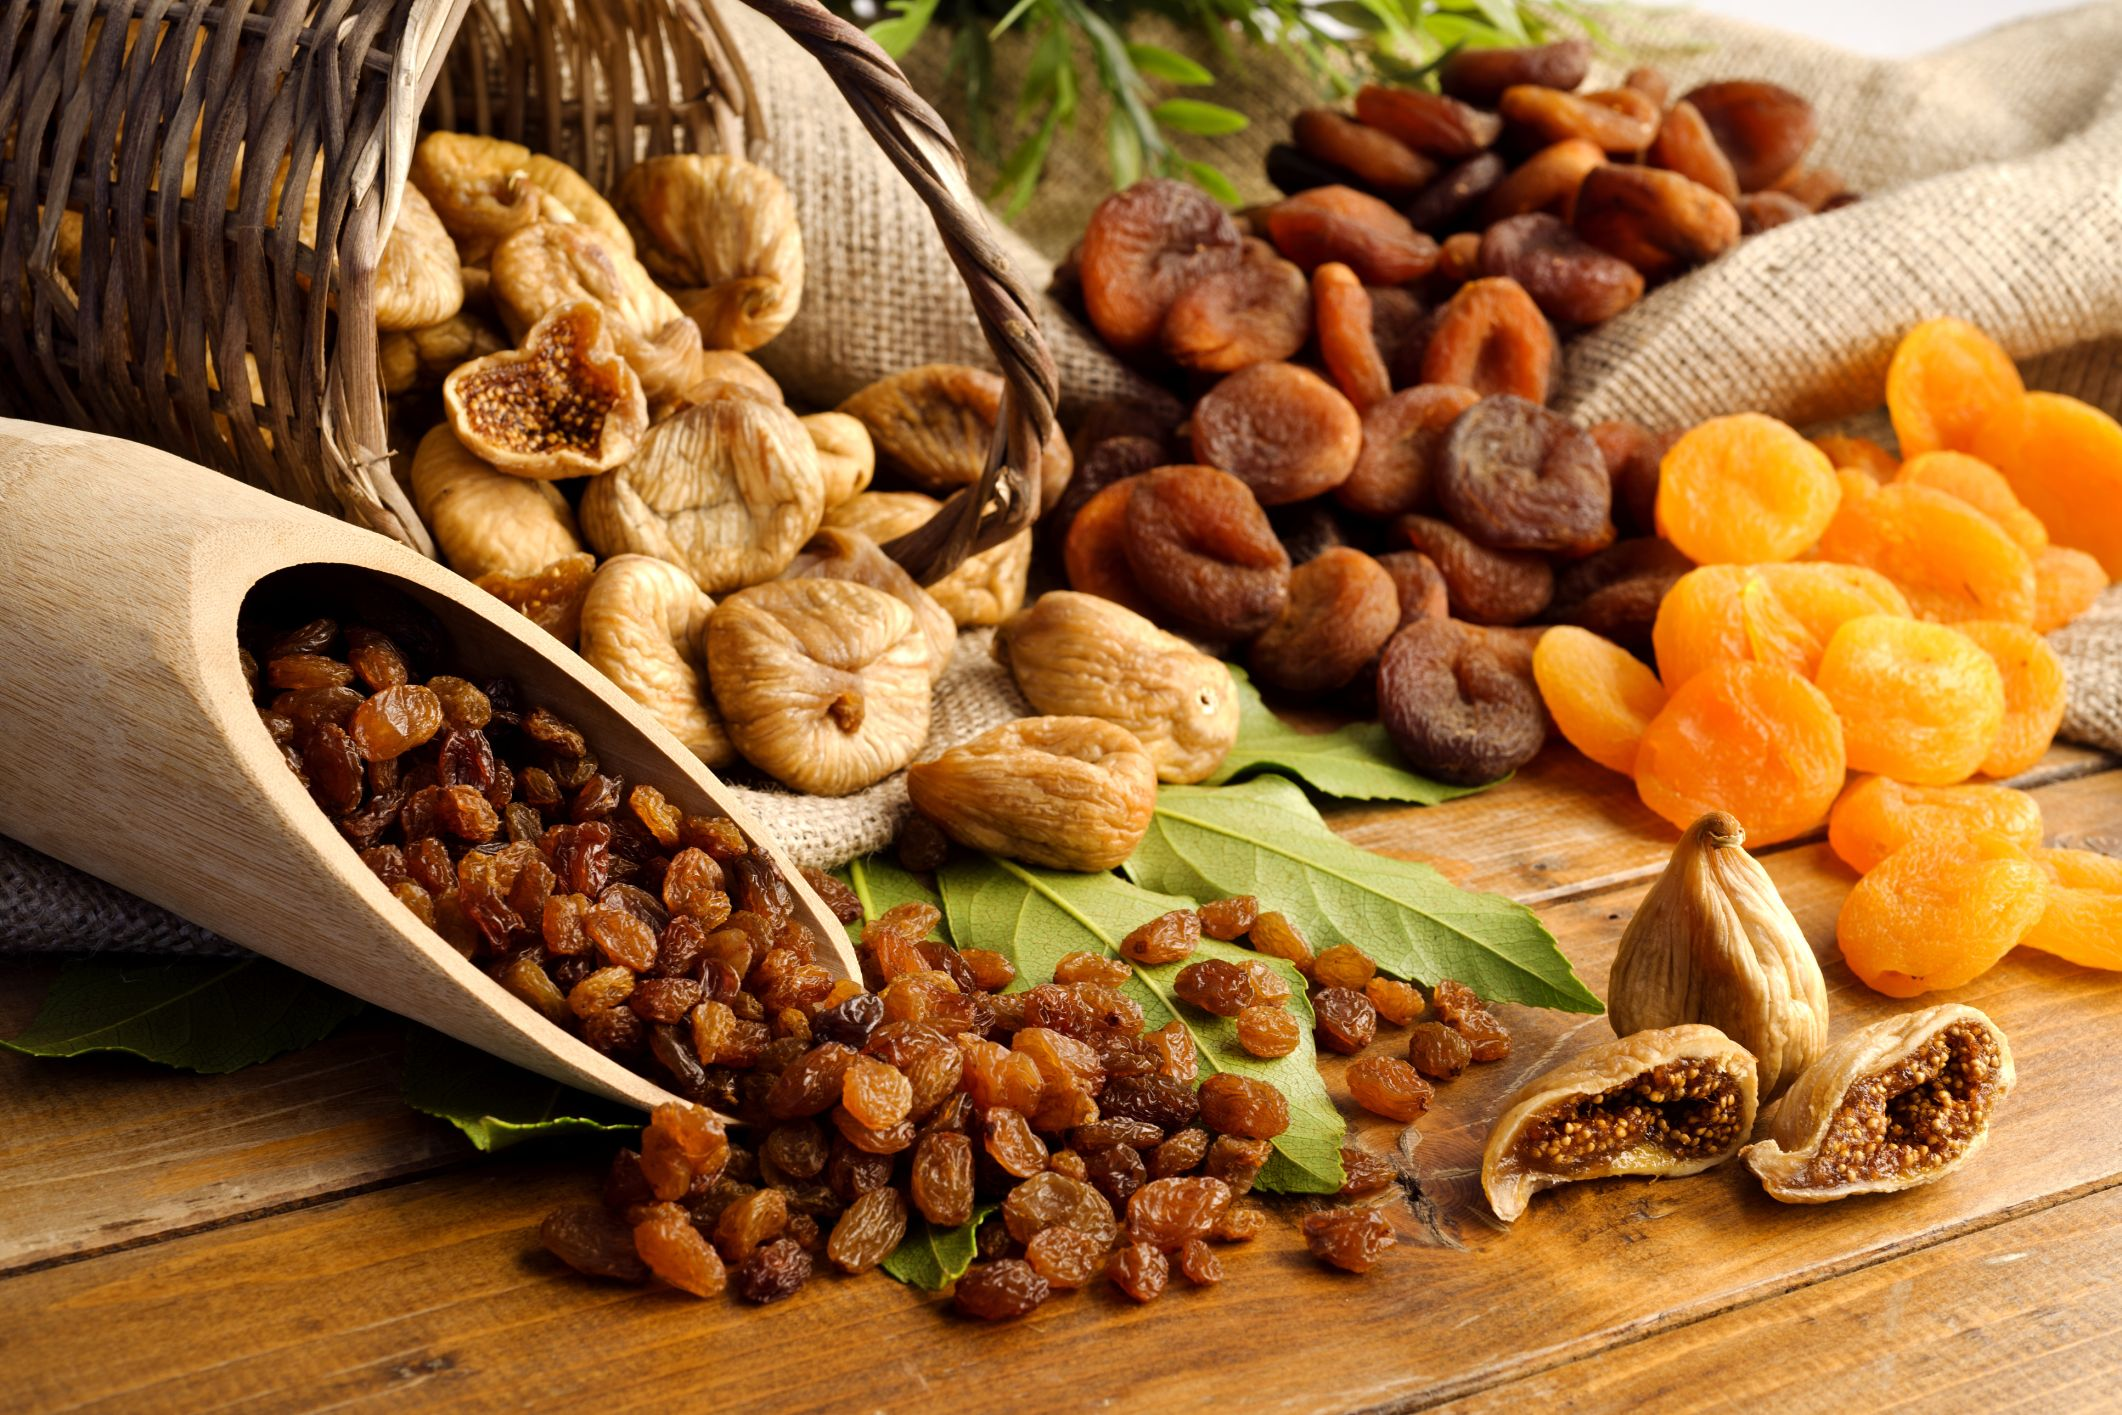 Buy dryfruit online India from the excellent online store